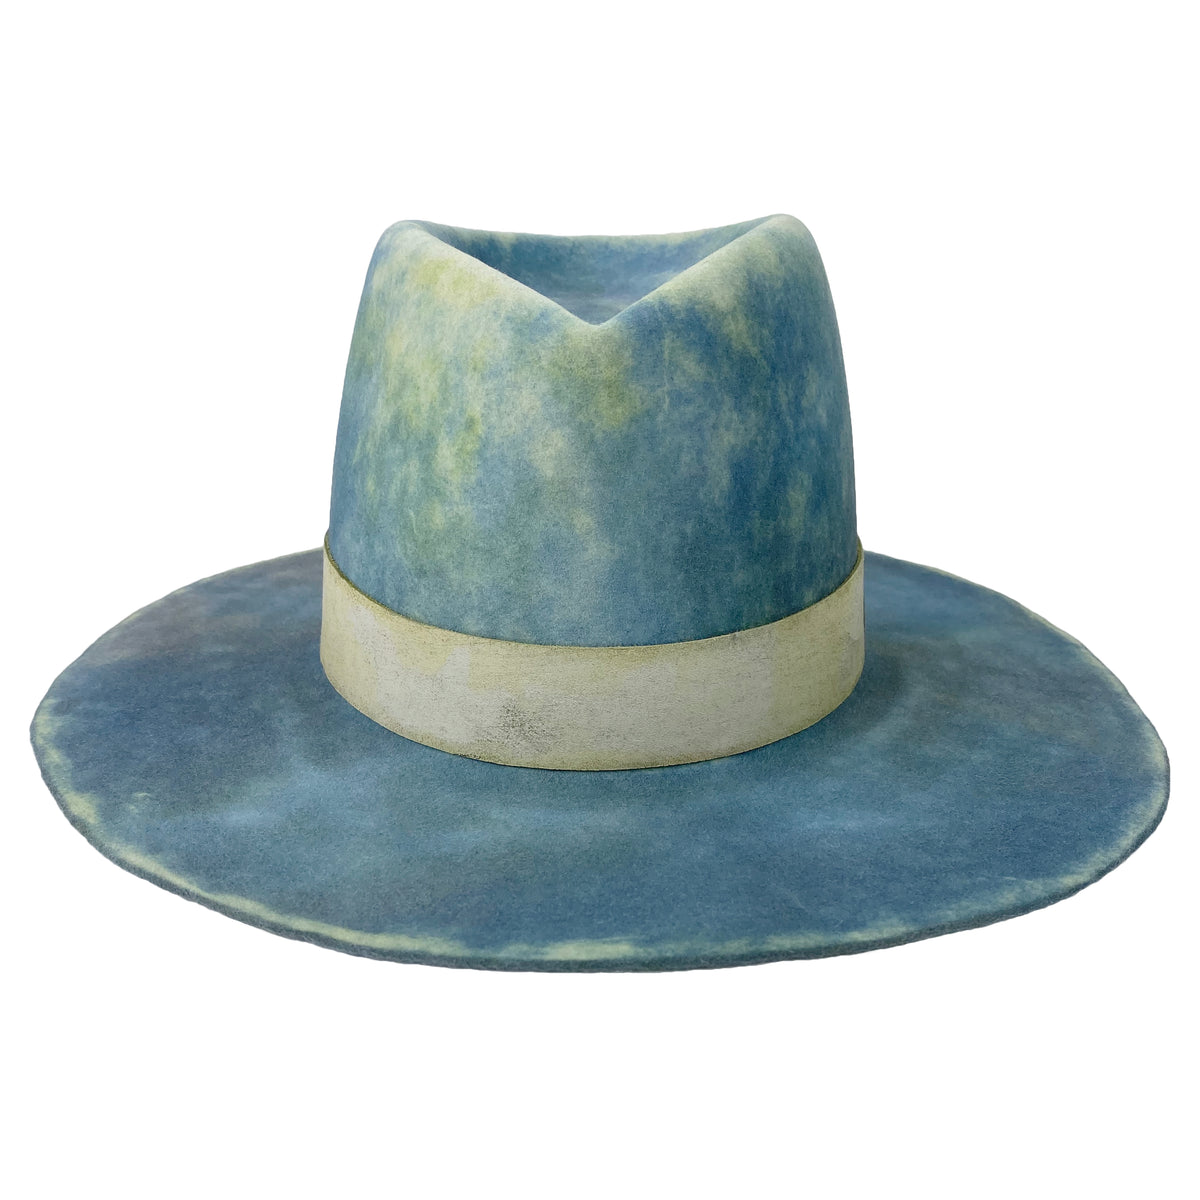 custom leather hatband and hand dyed hat body